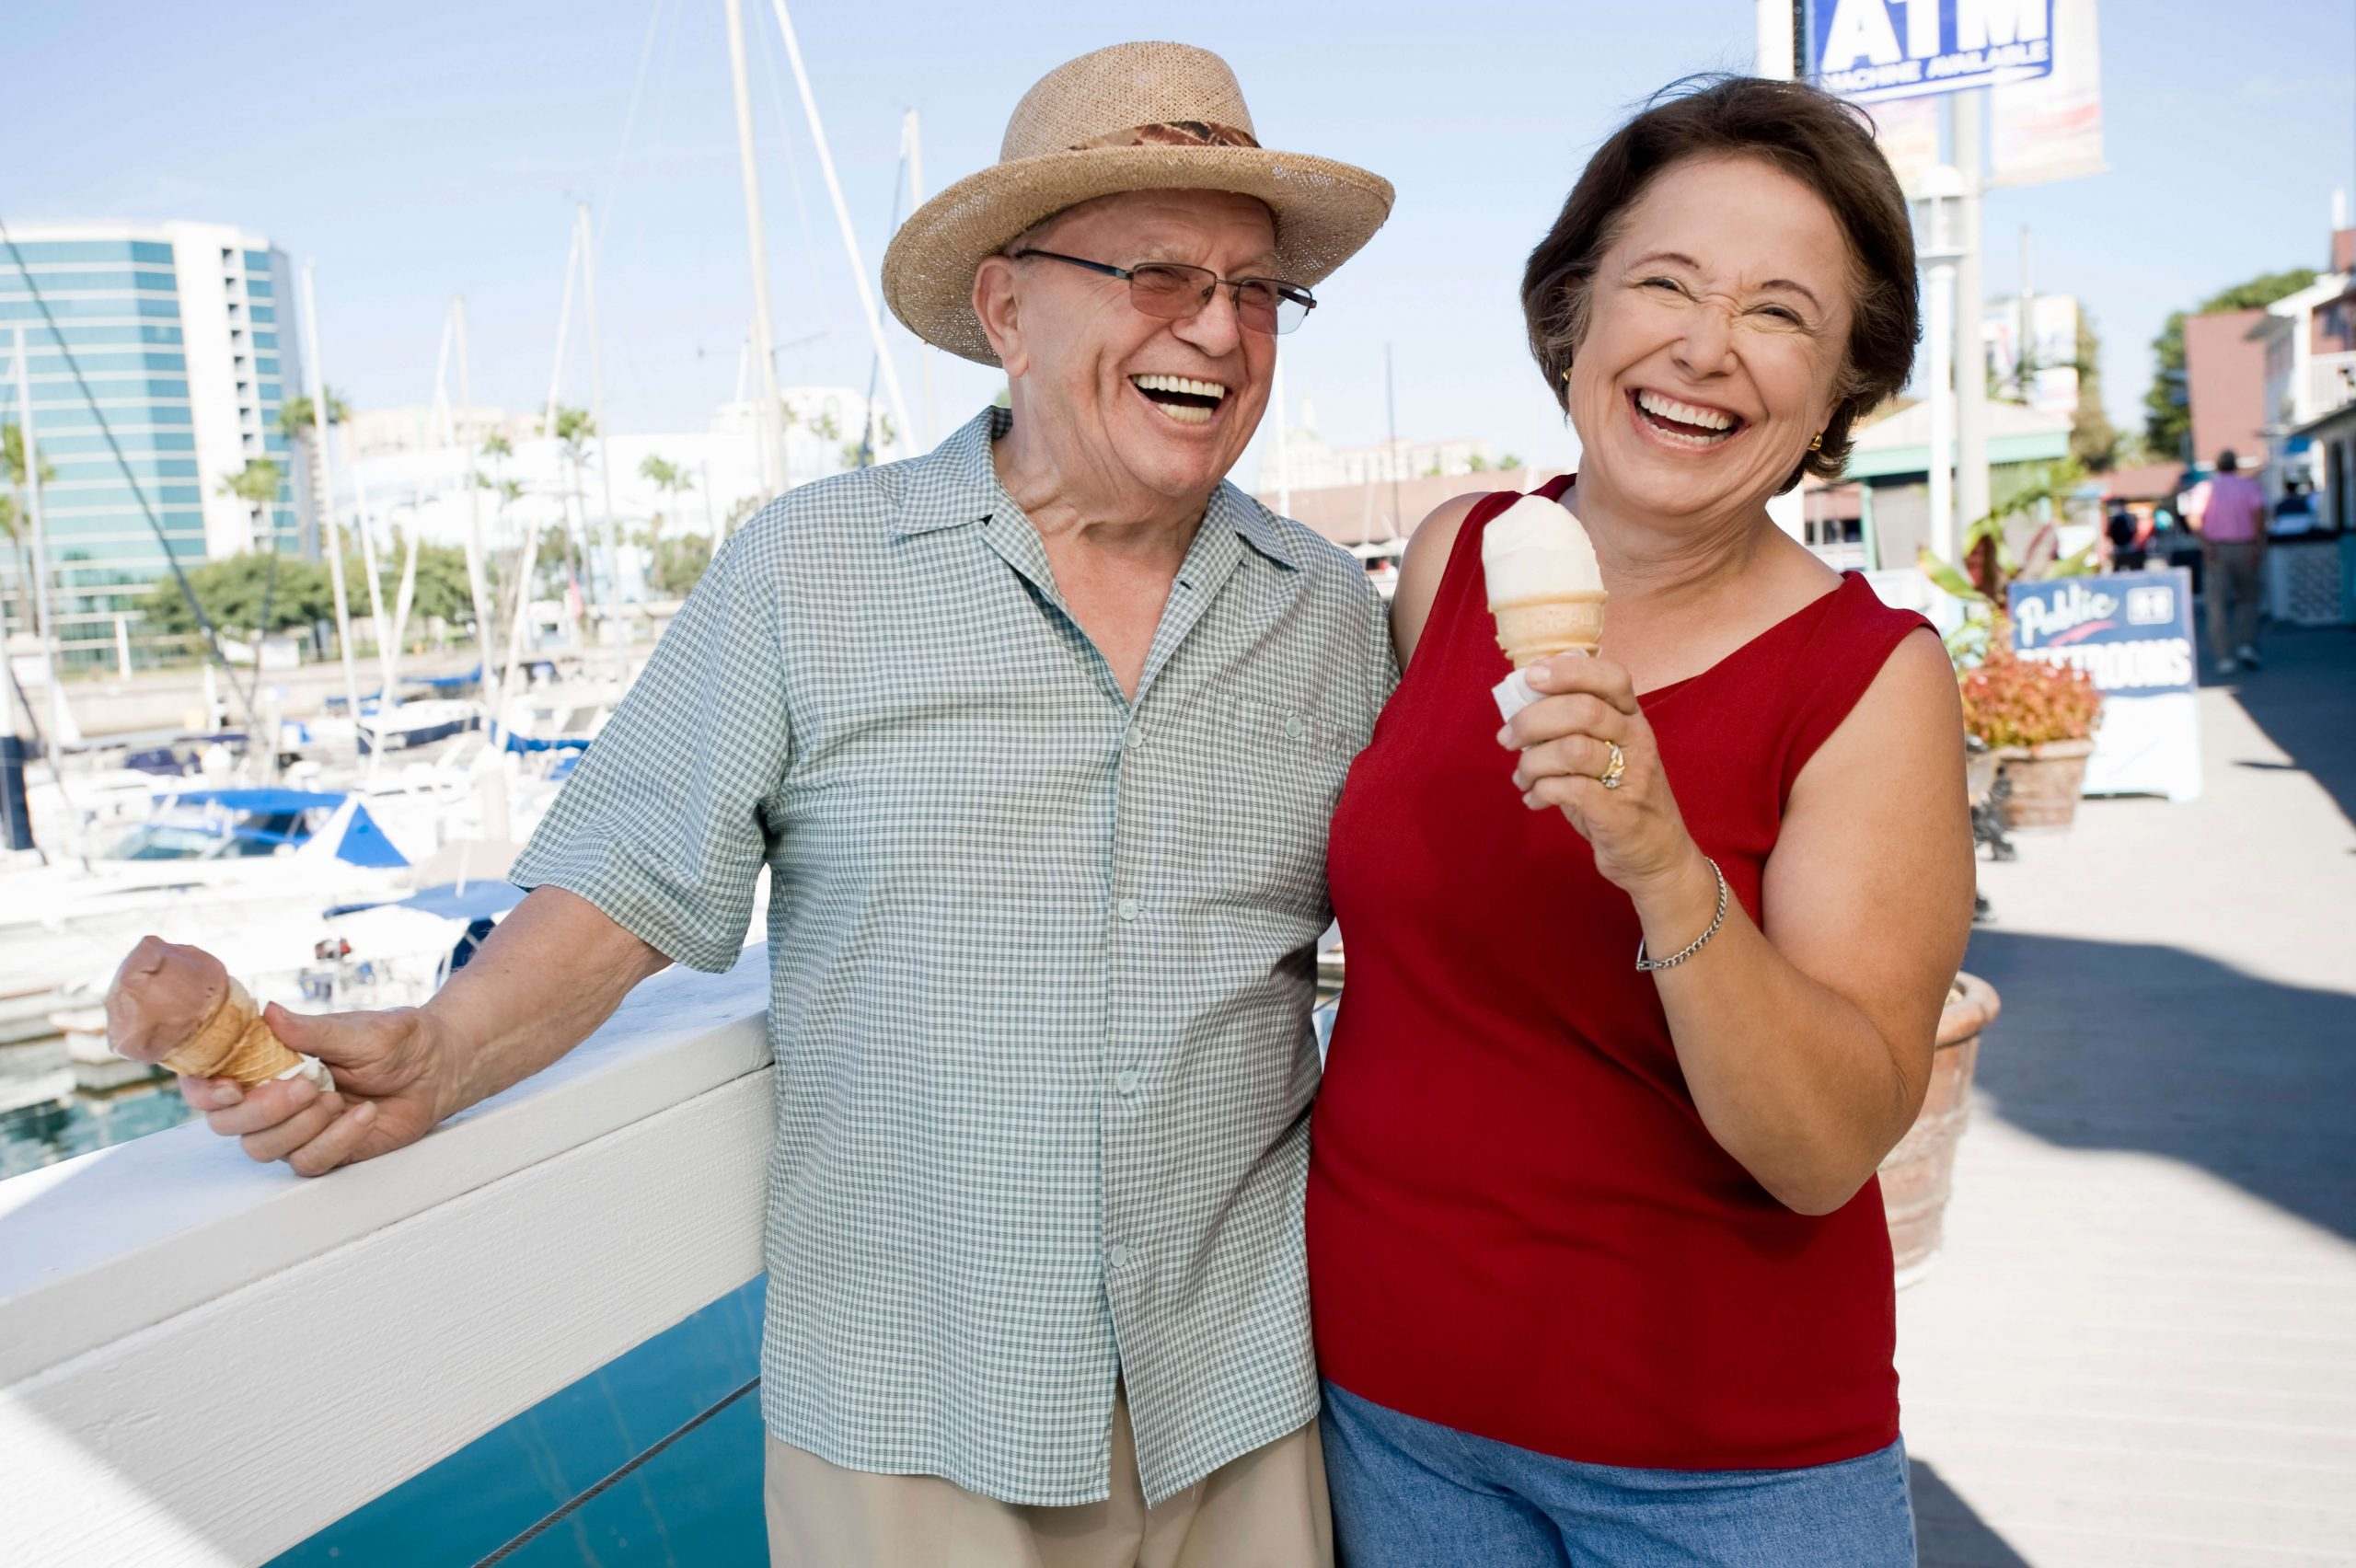 best beach retirement locations, best fishing retirement locations, retire in queensland